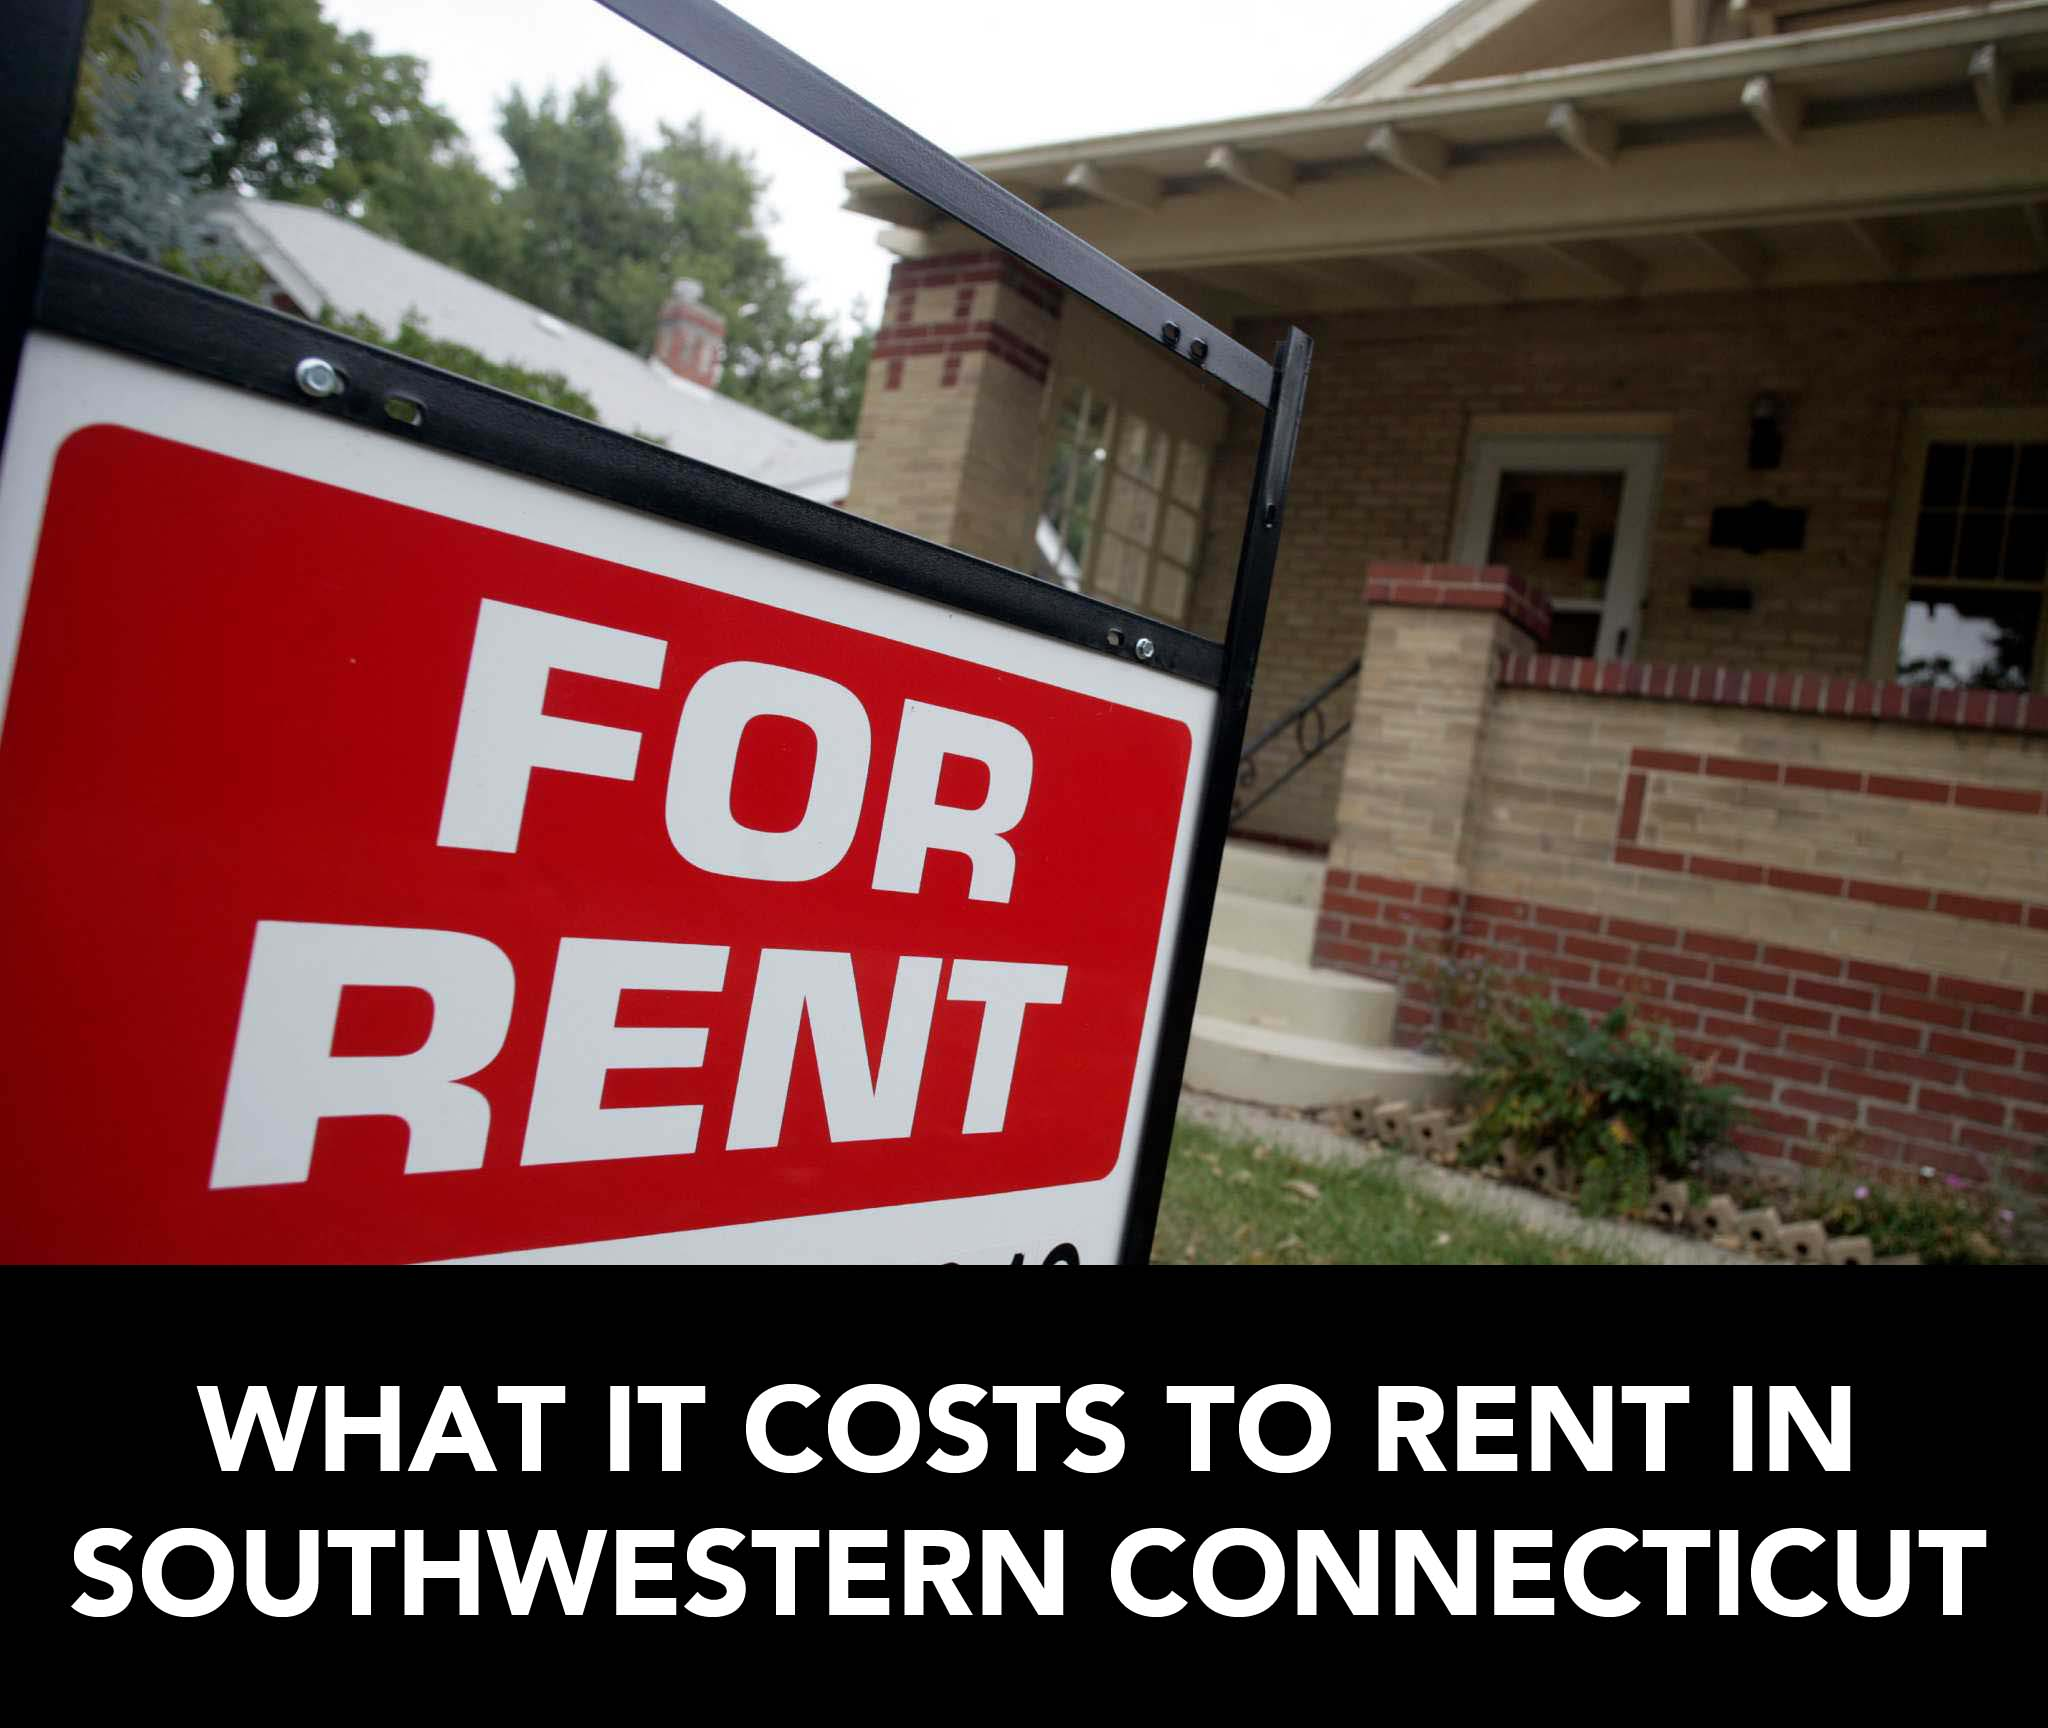 How Much Does It Cost To Rent In Southwestern Connecticut